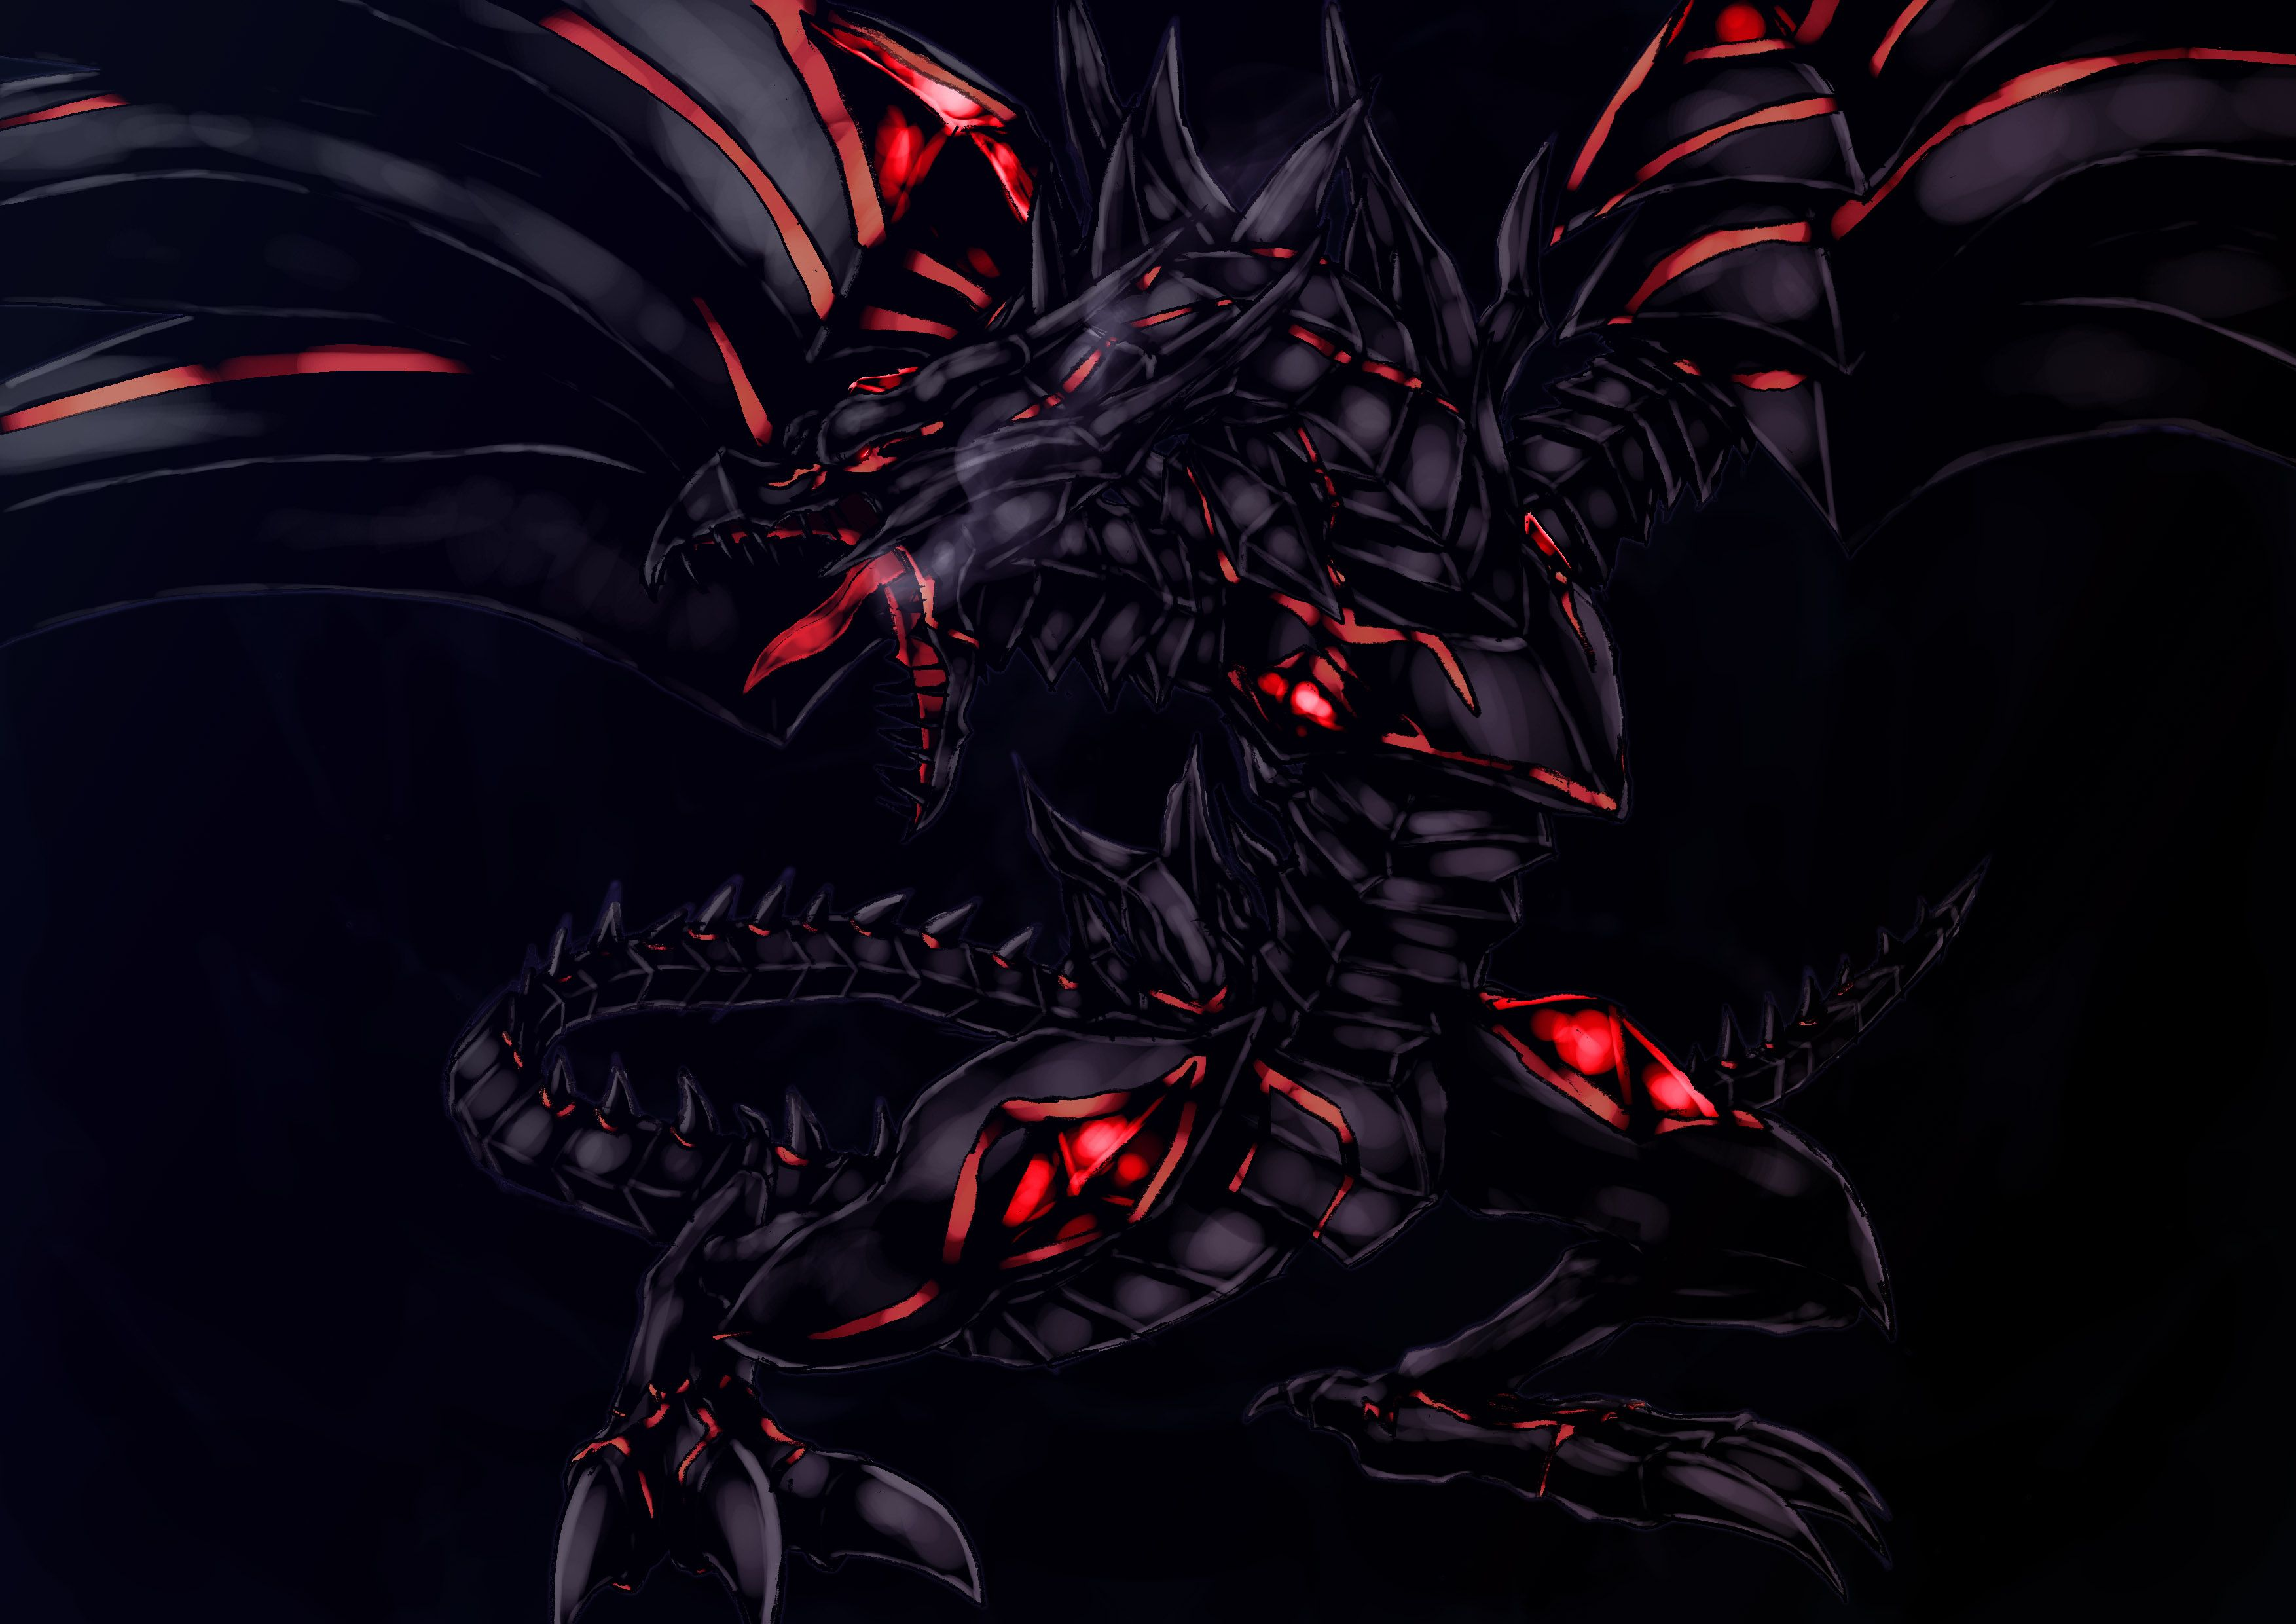 Red Eyes Black Dragon Wallpapers Top Free Red Eyes Black Dragon Backgrounds Wallpaperaccess